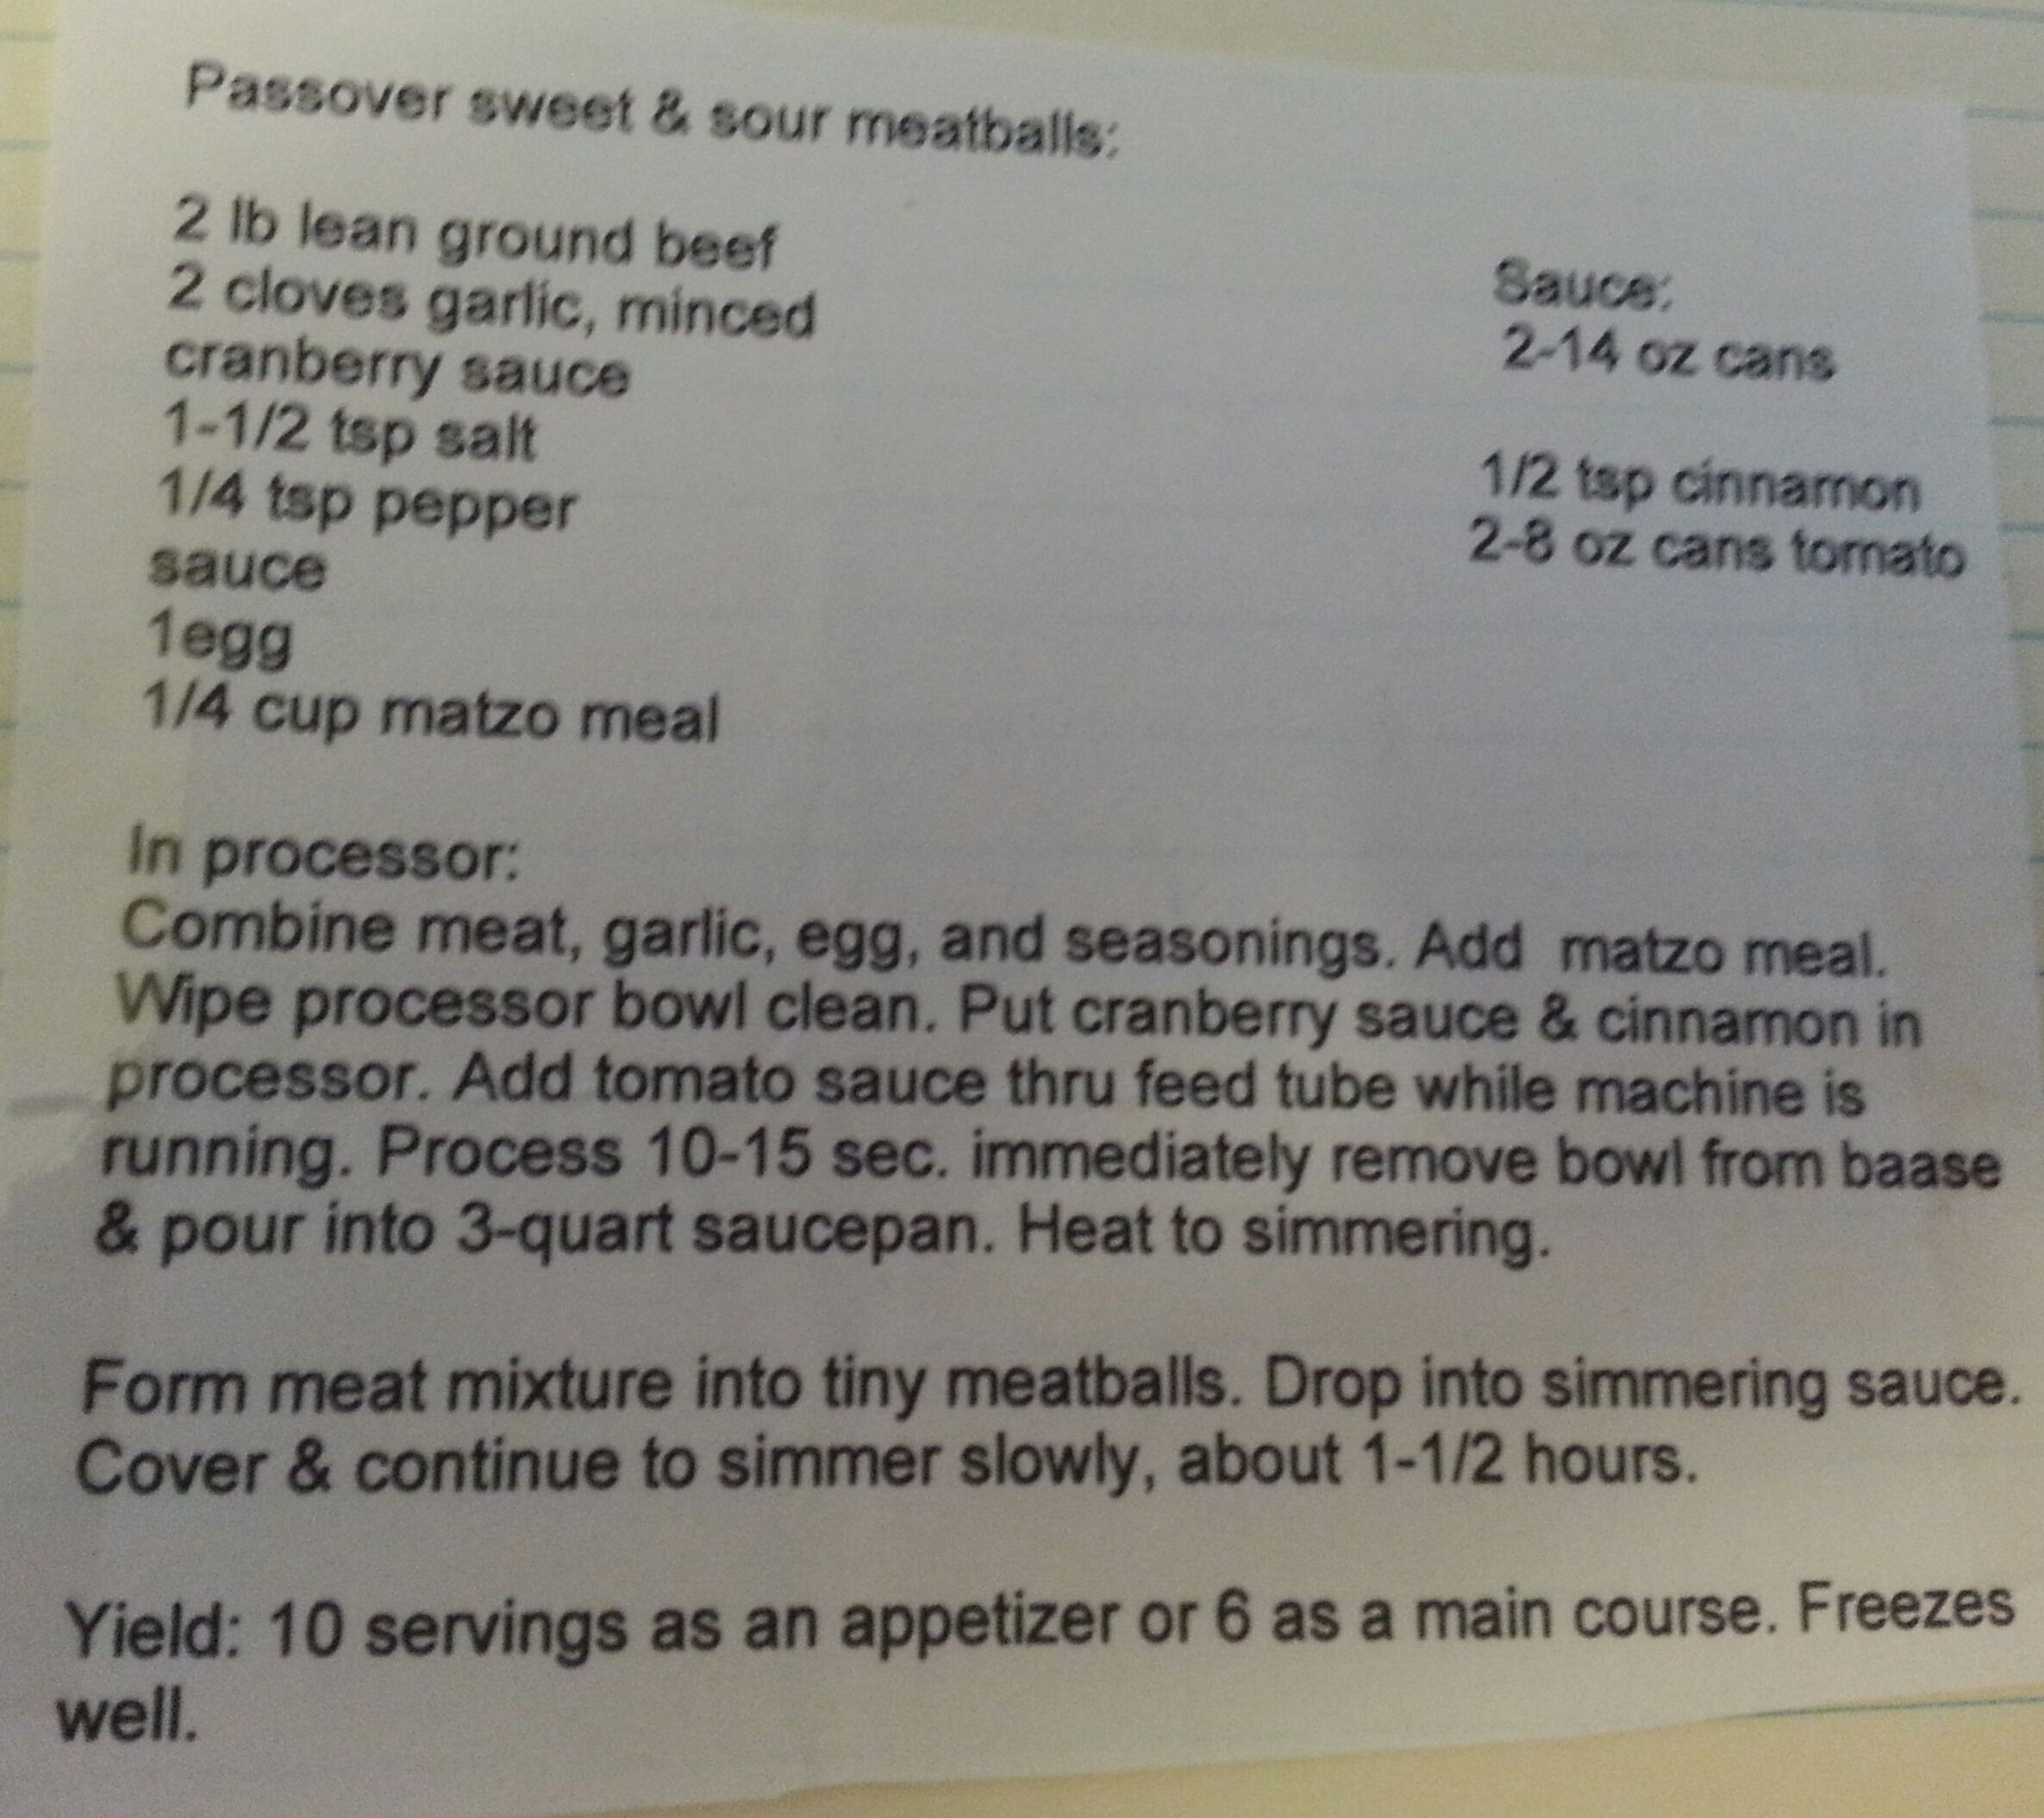 Sweet and Sour Meatballs   Recipes - Passover   Pinterest